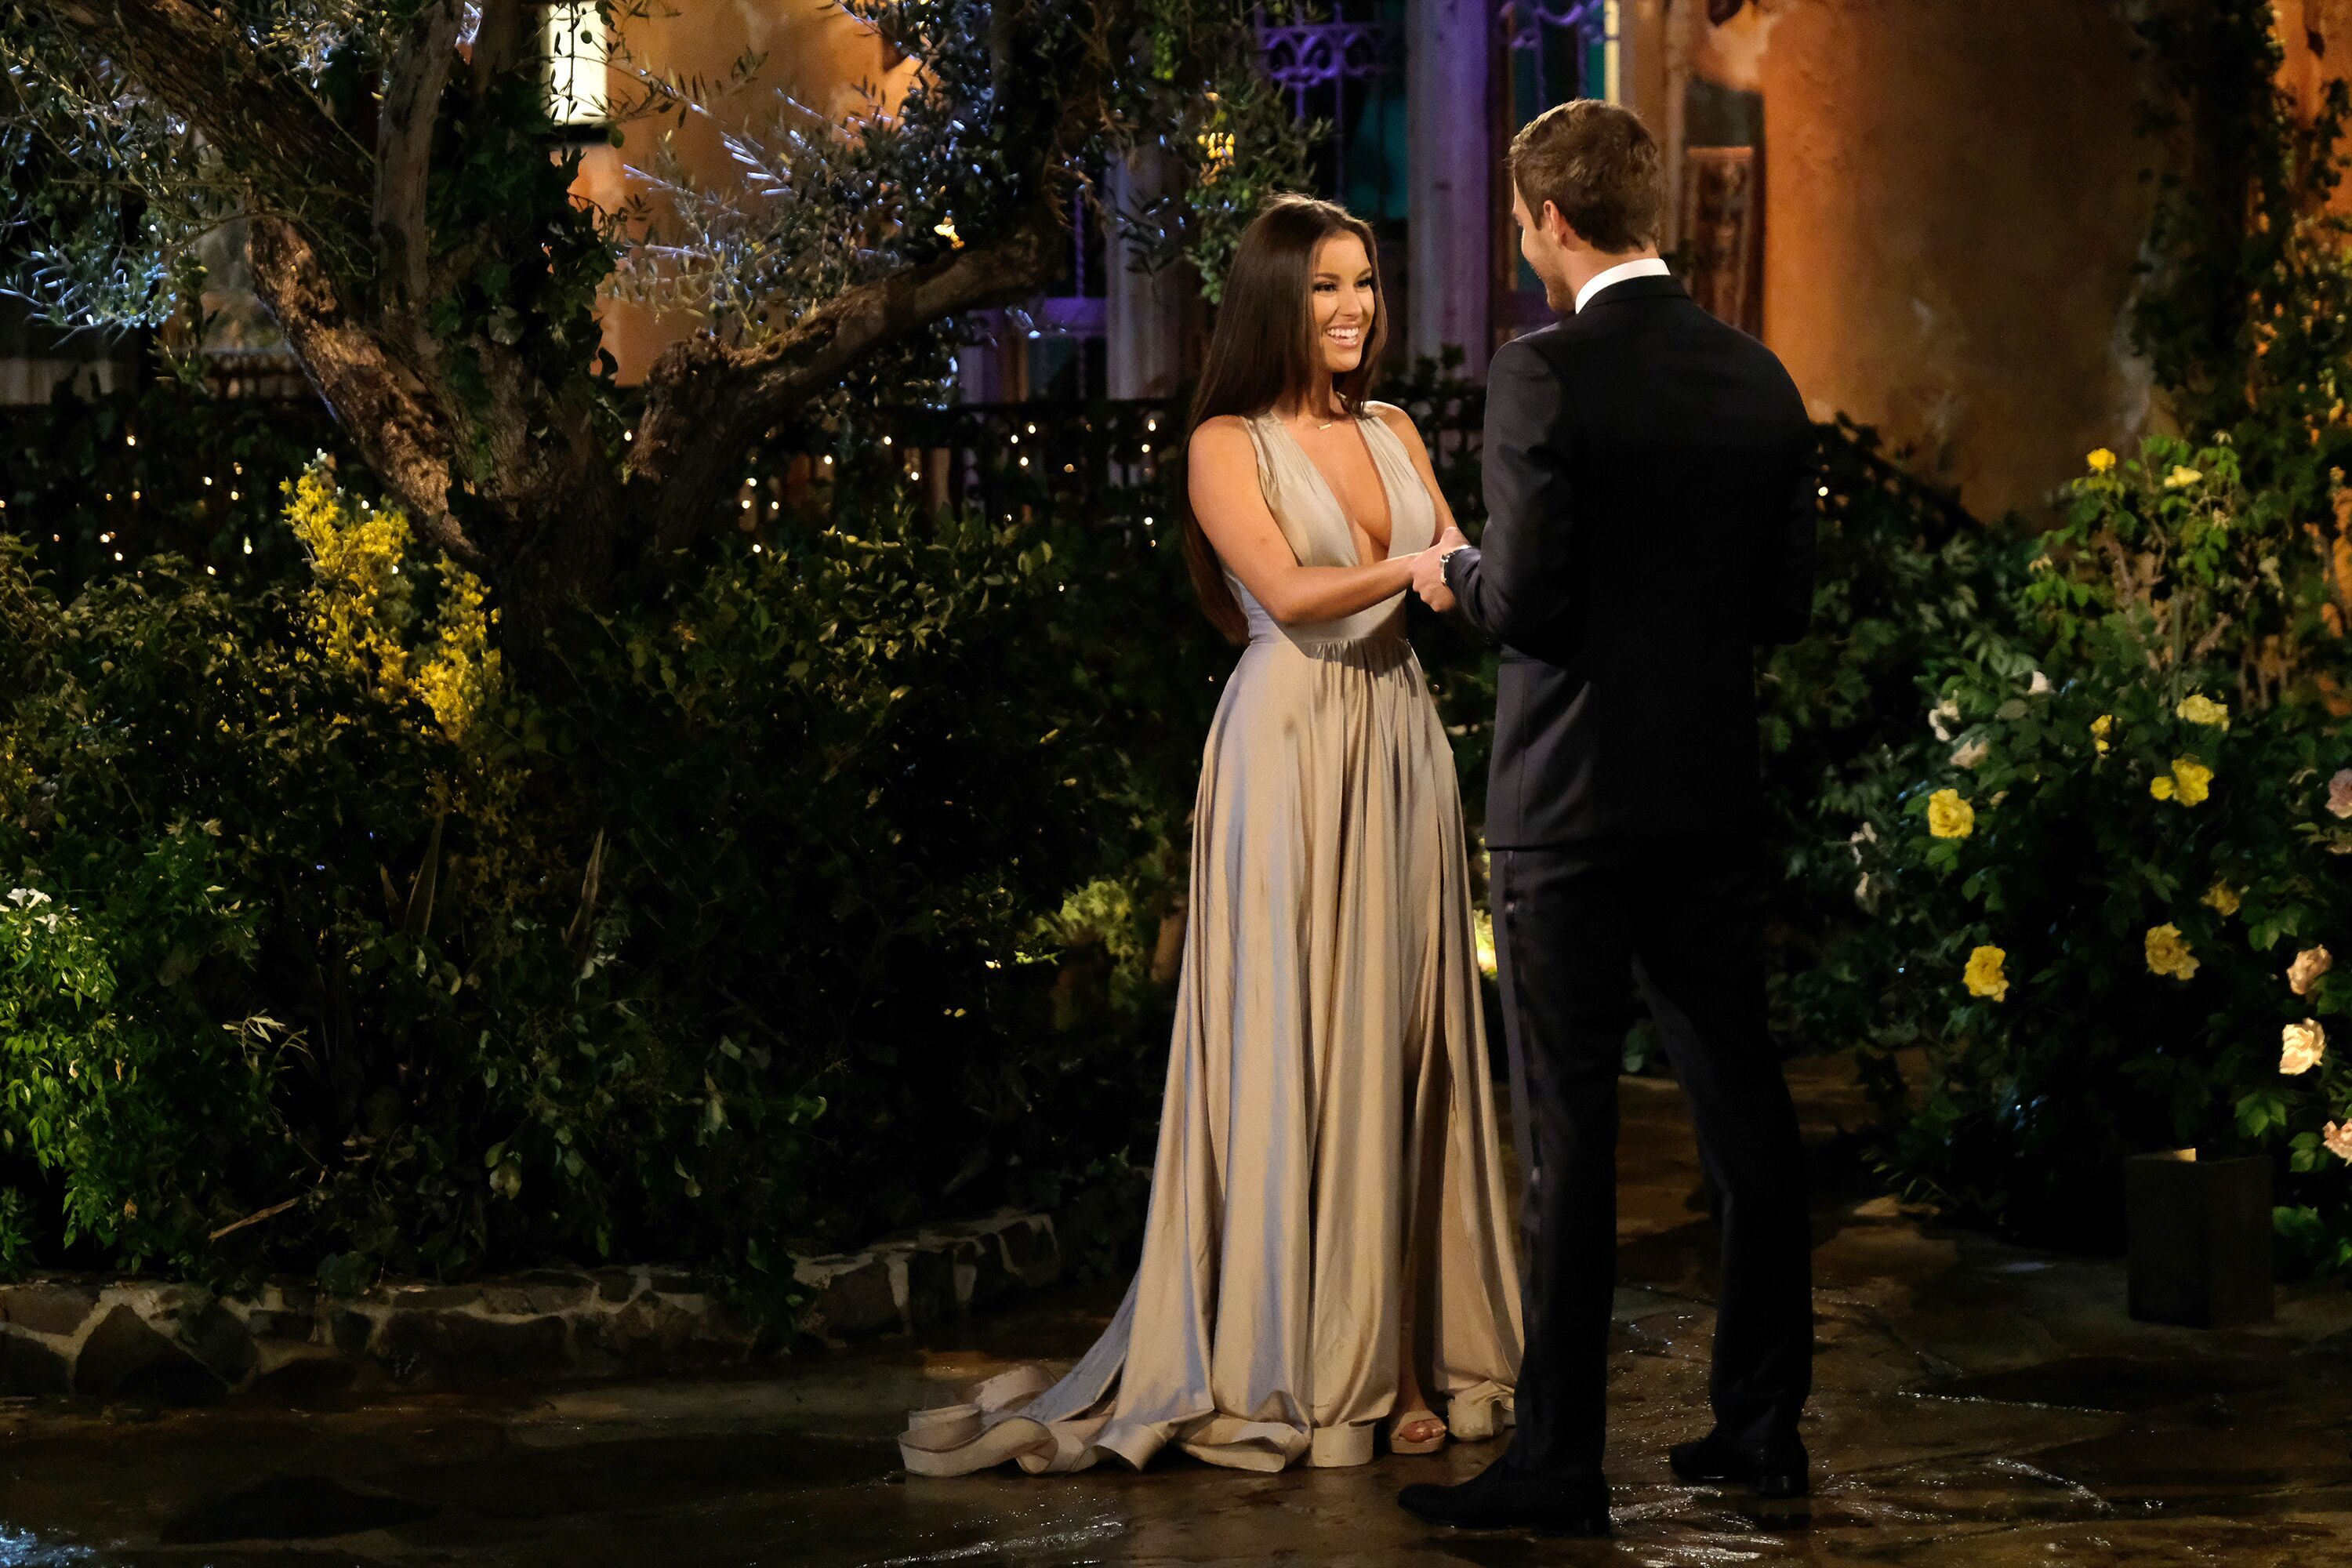 The Bachelor: Let's break down the Alayah drama